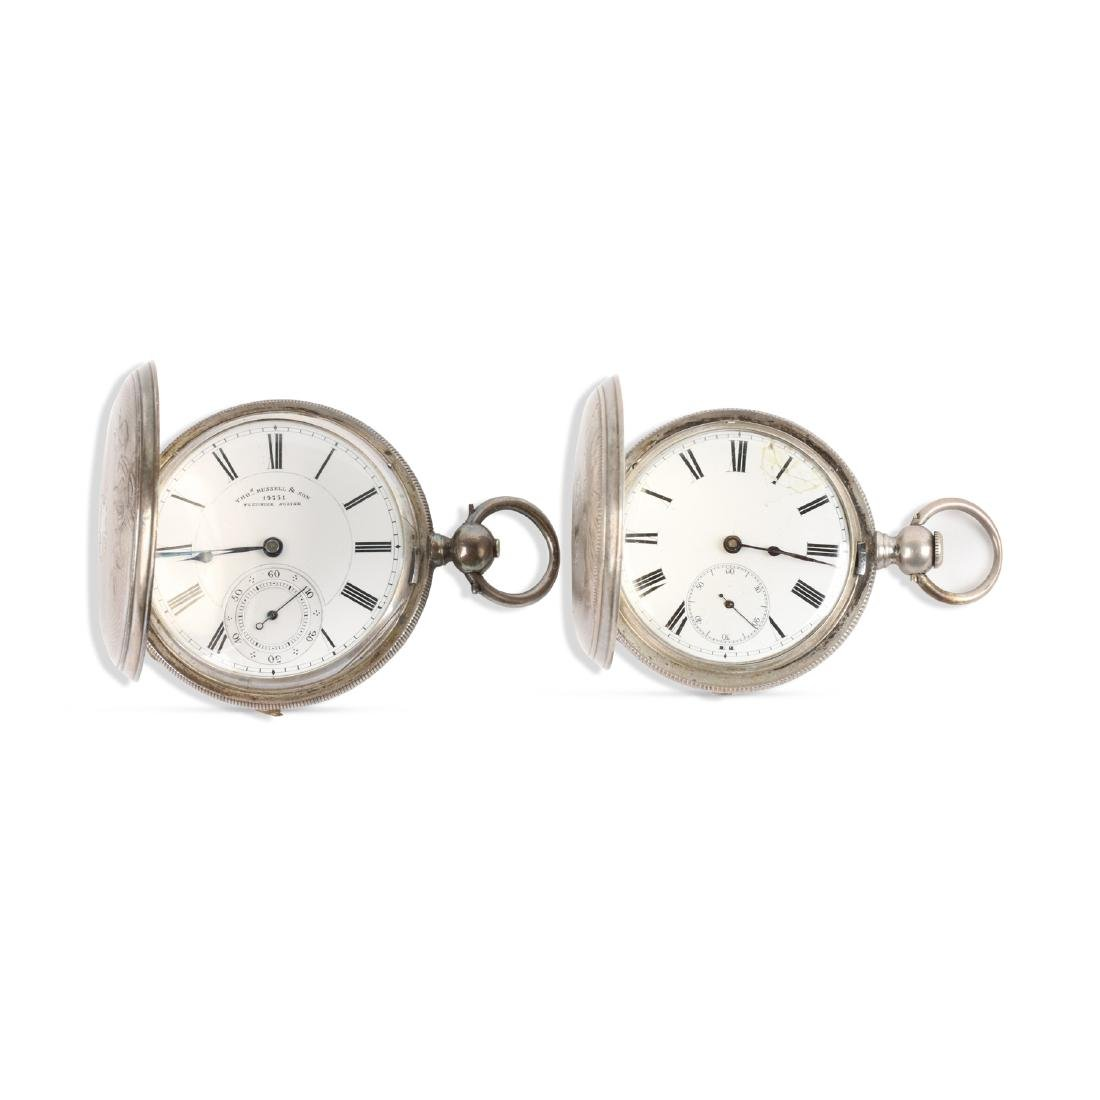 English, Sterling Silver Pocket Watches